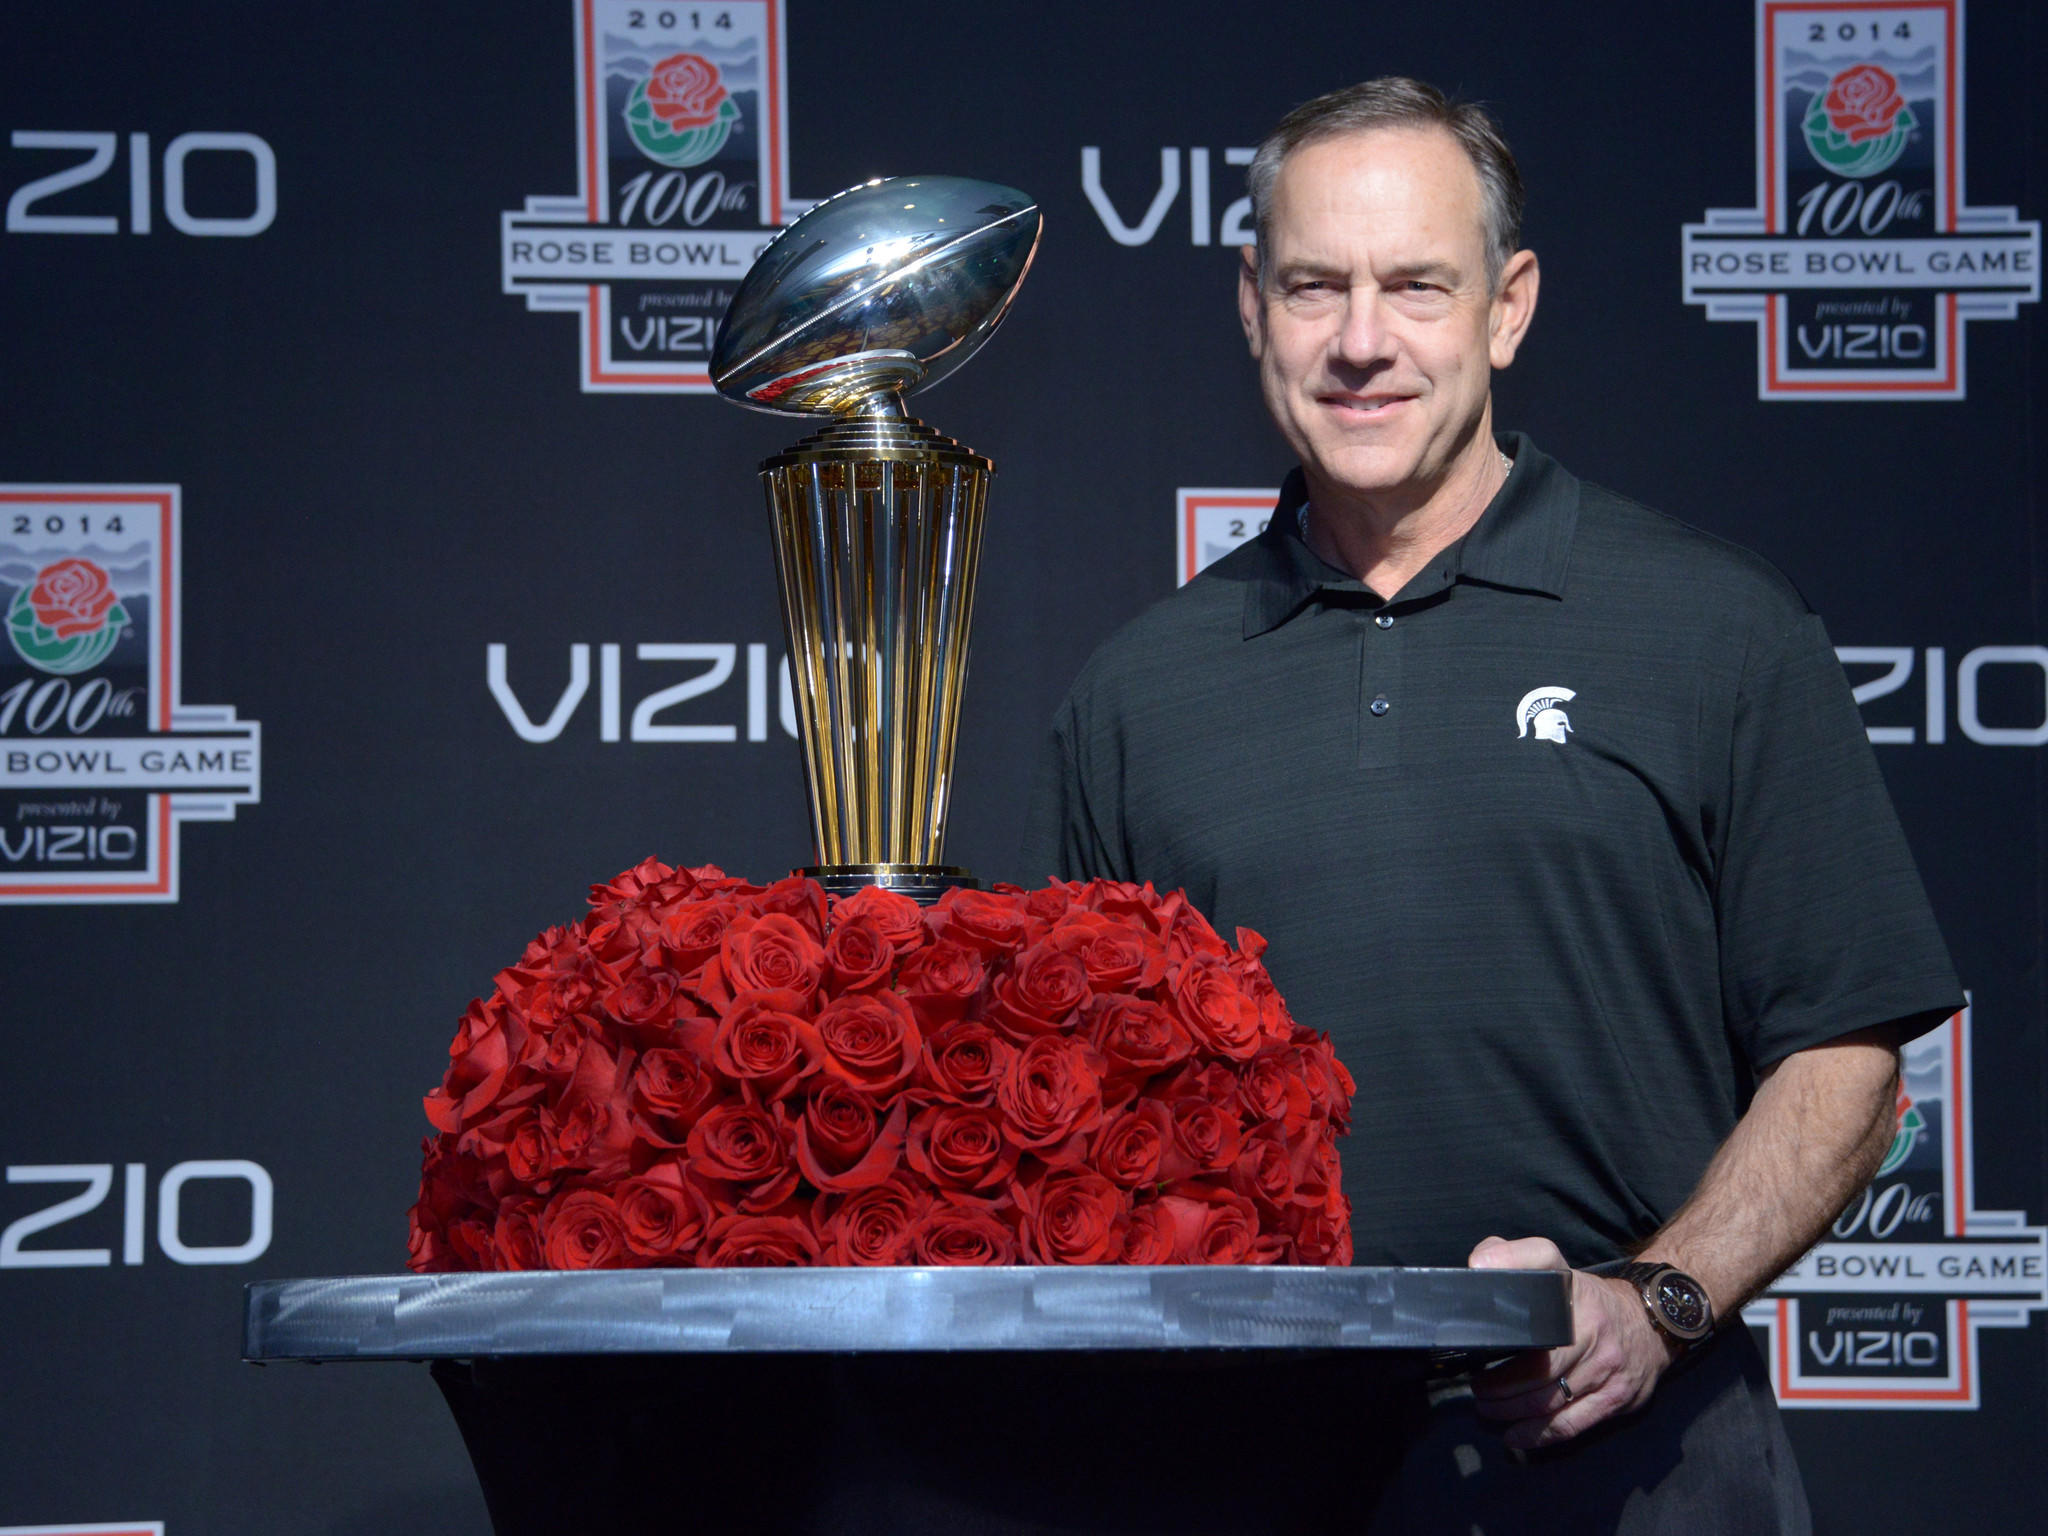 Michigan State coach Mark Dantonio poses with the Leishman Trophy at press conference for the 100th Rose Bowl at LA Hotel Downtown.